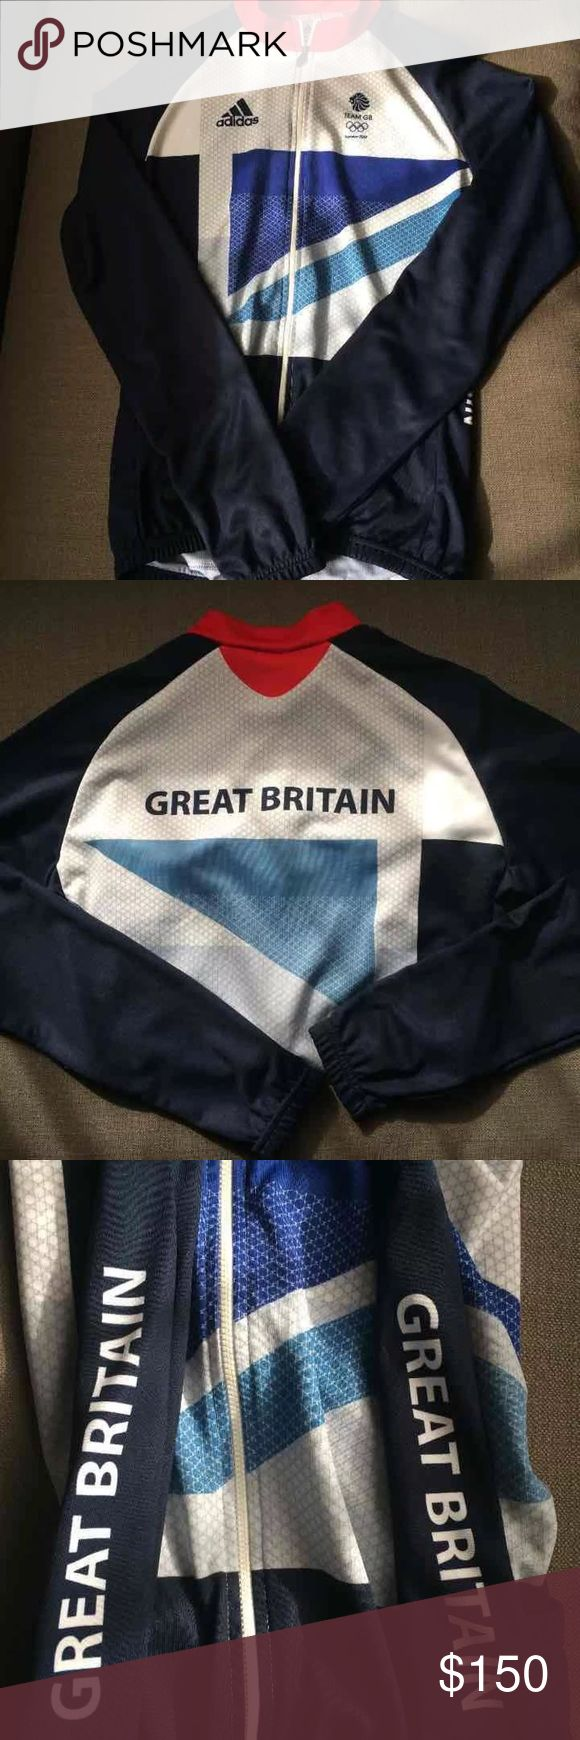 NWT Team GB cycling jersey Stella McCartney for Adidas Size large Official Team GB cycle jersey for 2012 Olympics Limited edition Adidas by Stella McCartney Shirts